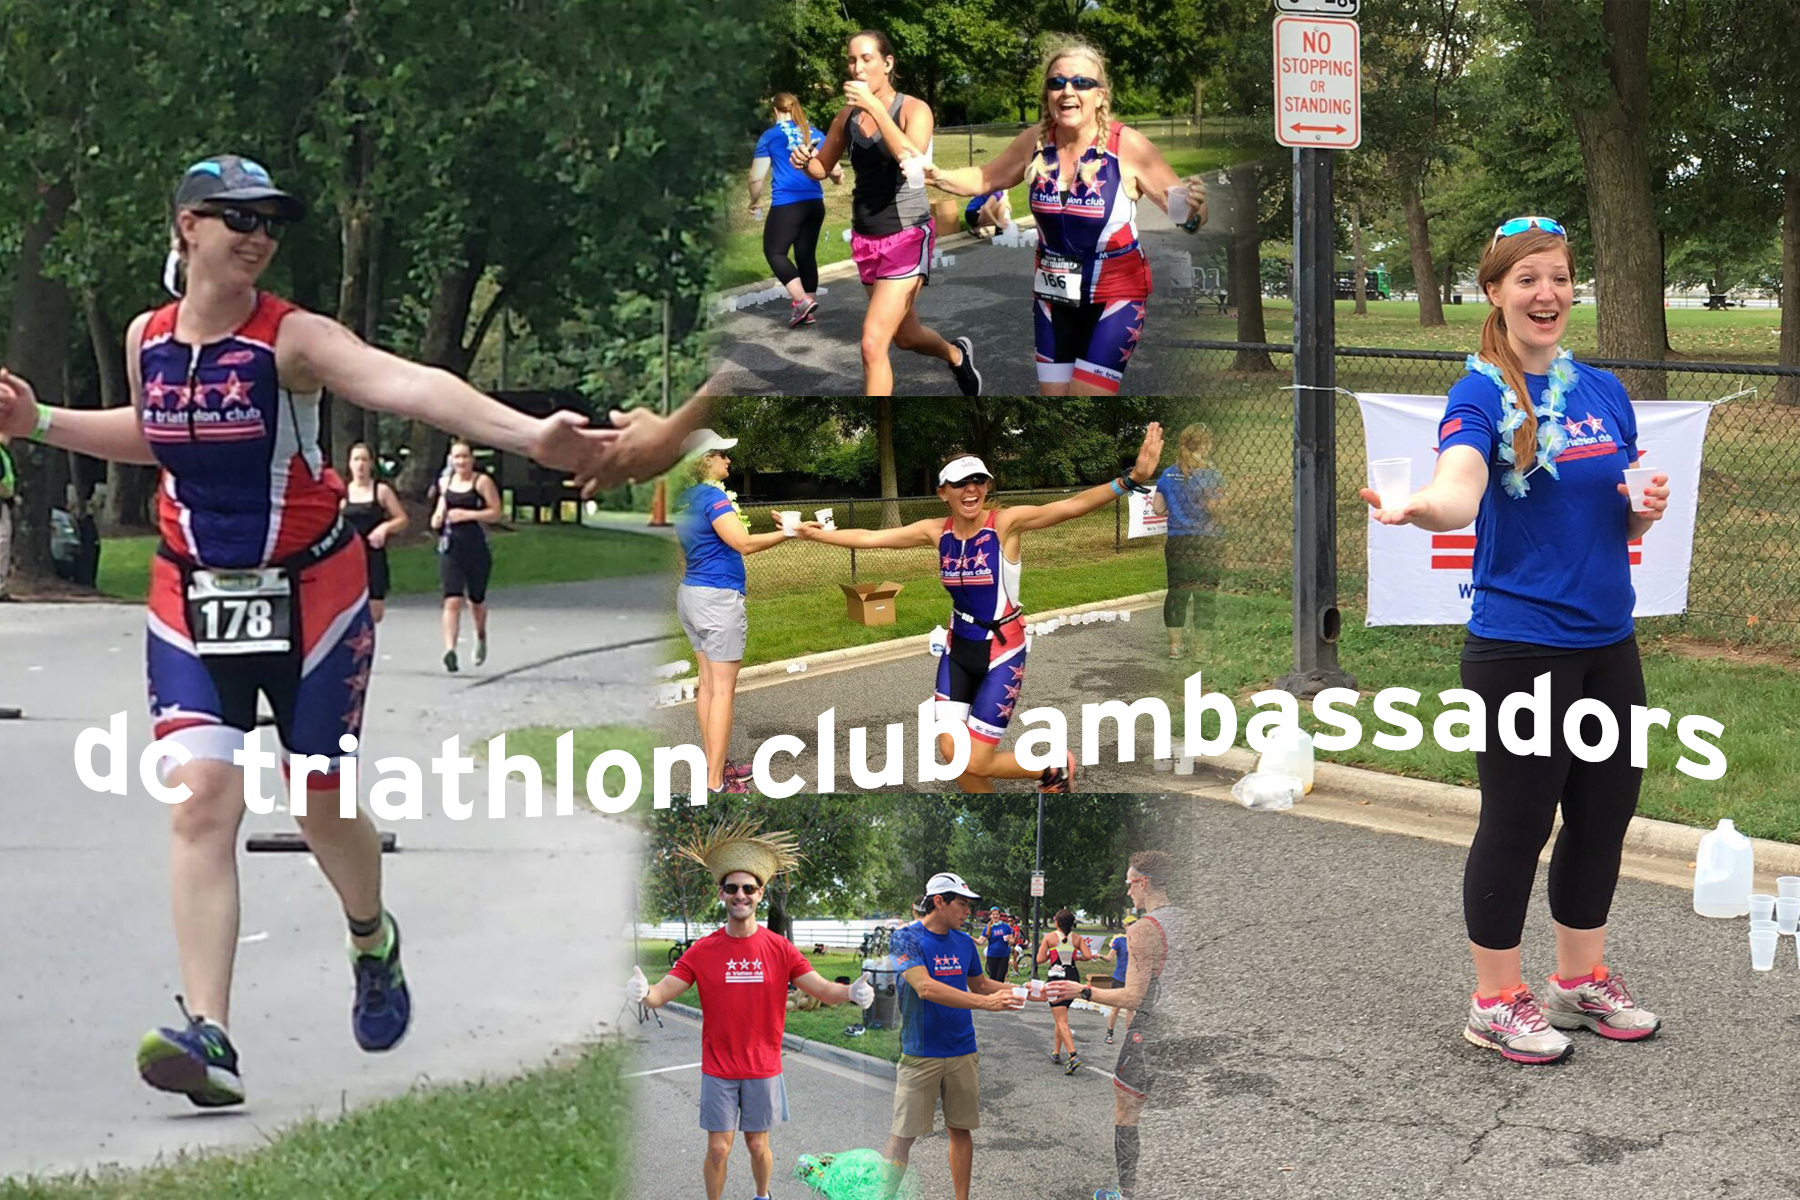 NEW for 2019: DCTri Ambassadors!